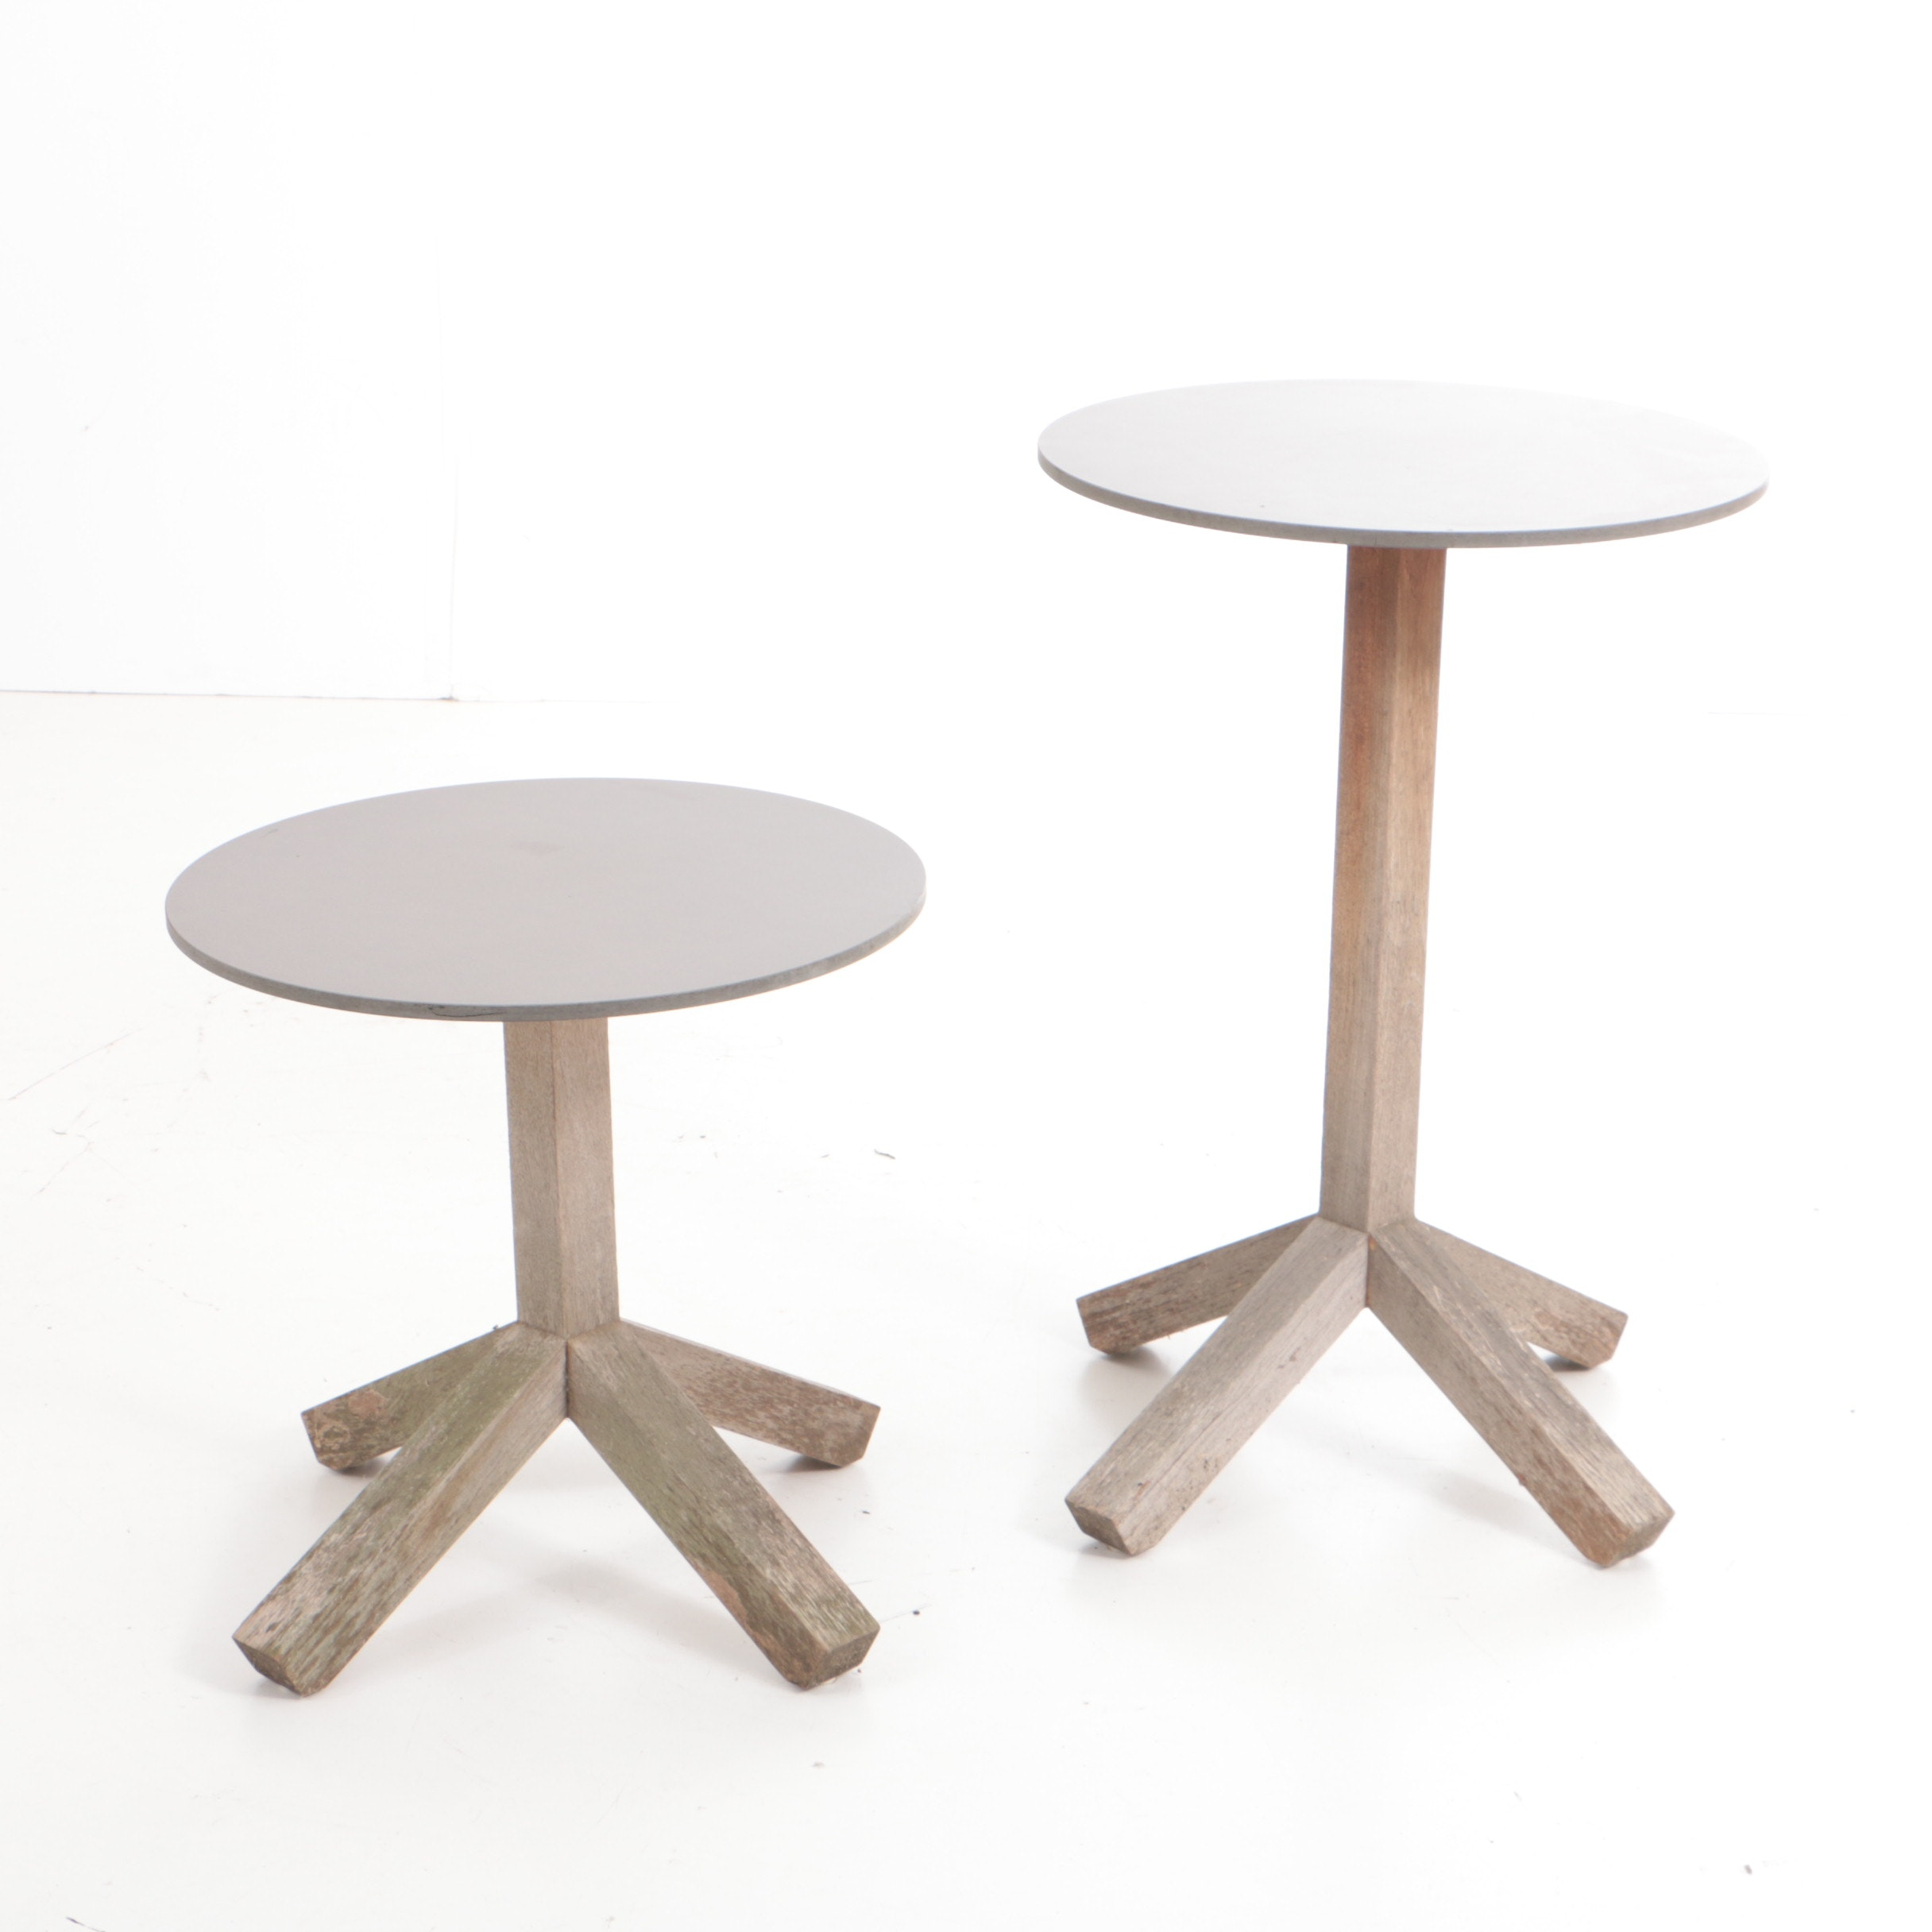 "Two Teak ""Roda Root"" Accent Tables Designed by Rodolfo Dordoni"